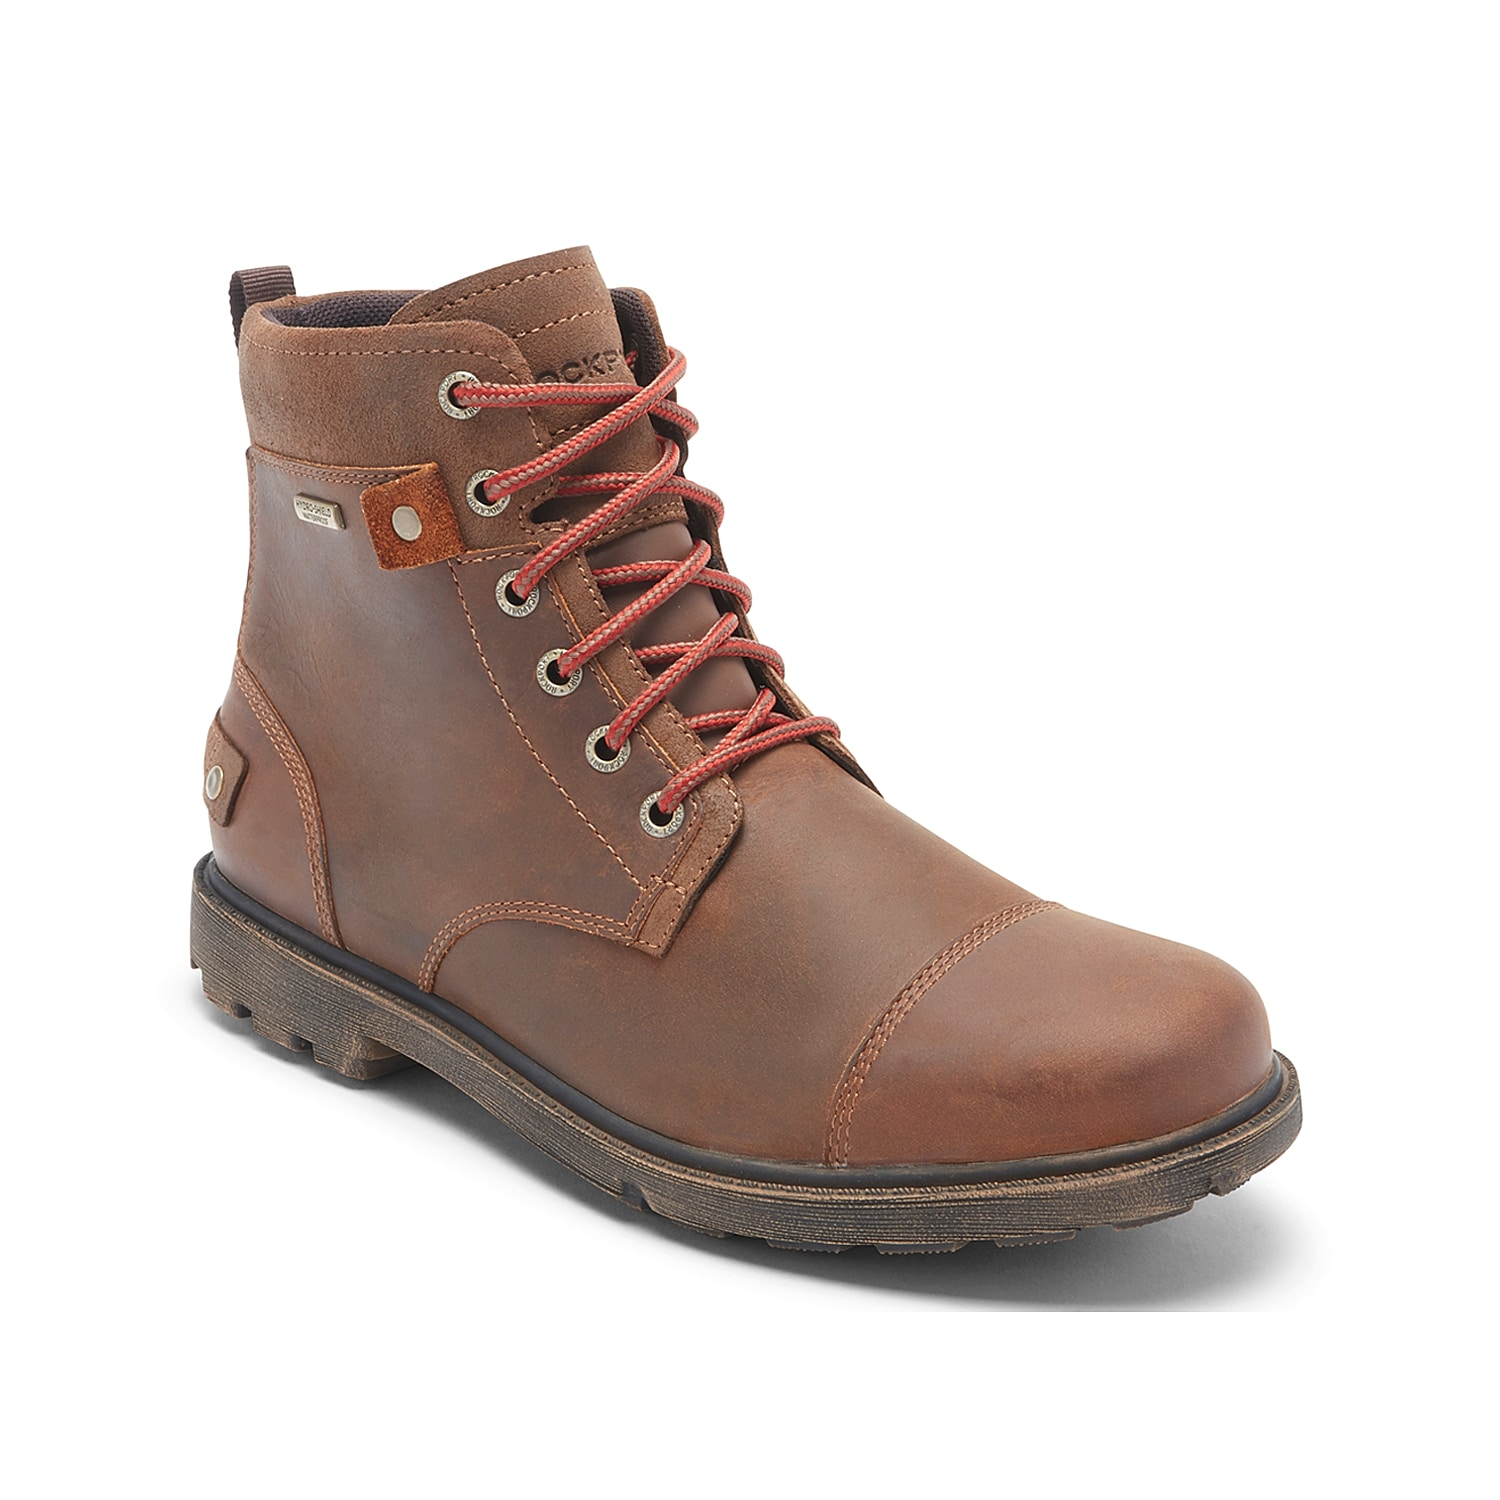 Complement your durable wardrobe with the Storm Surge II boot from Rockport. This lace-up pair features versatile closures and a waterproof, leather construction that will be perfect for a variety of weather conditions!